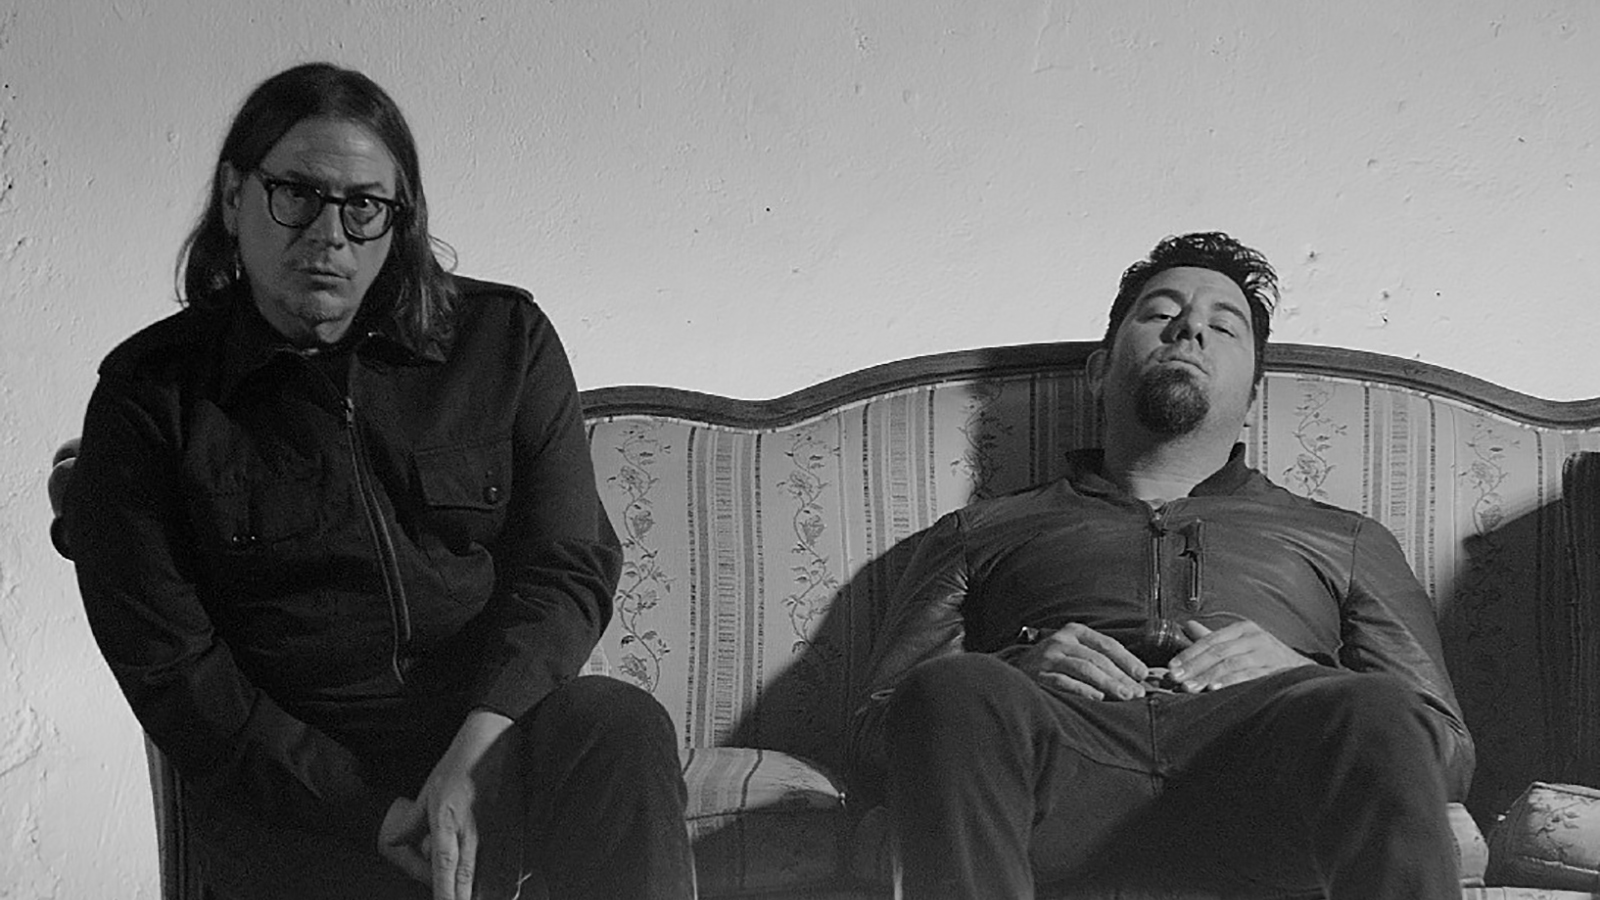 """Hear New Song """"Crisis"""" From Saudade, Featuring Deftones, Bad Brains Members, More"""